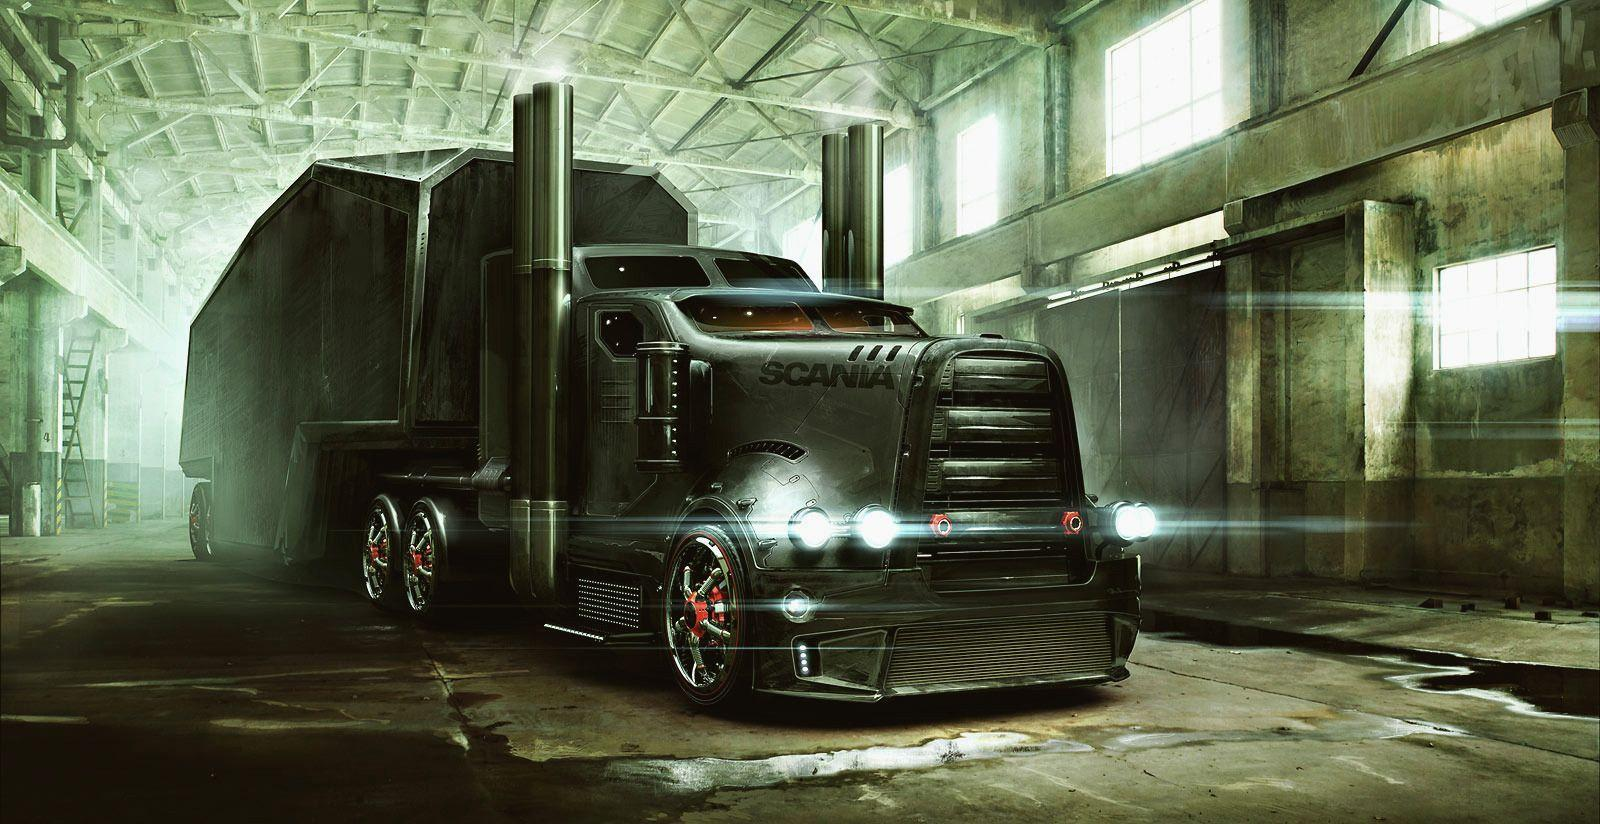 Truck Wallpapers and Backgrounds Image